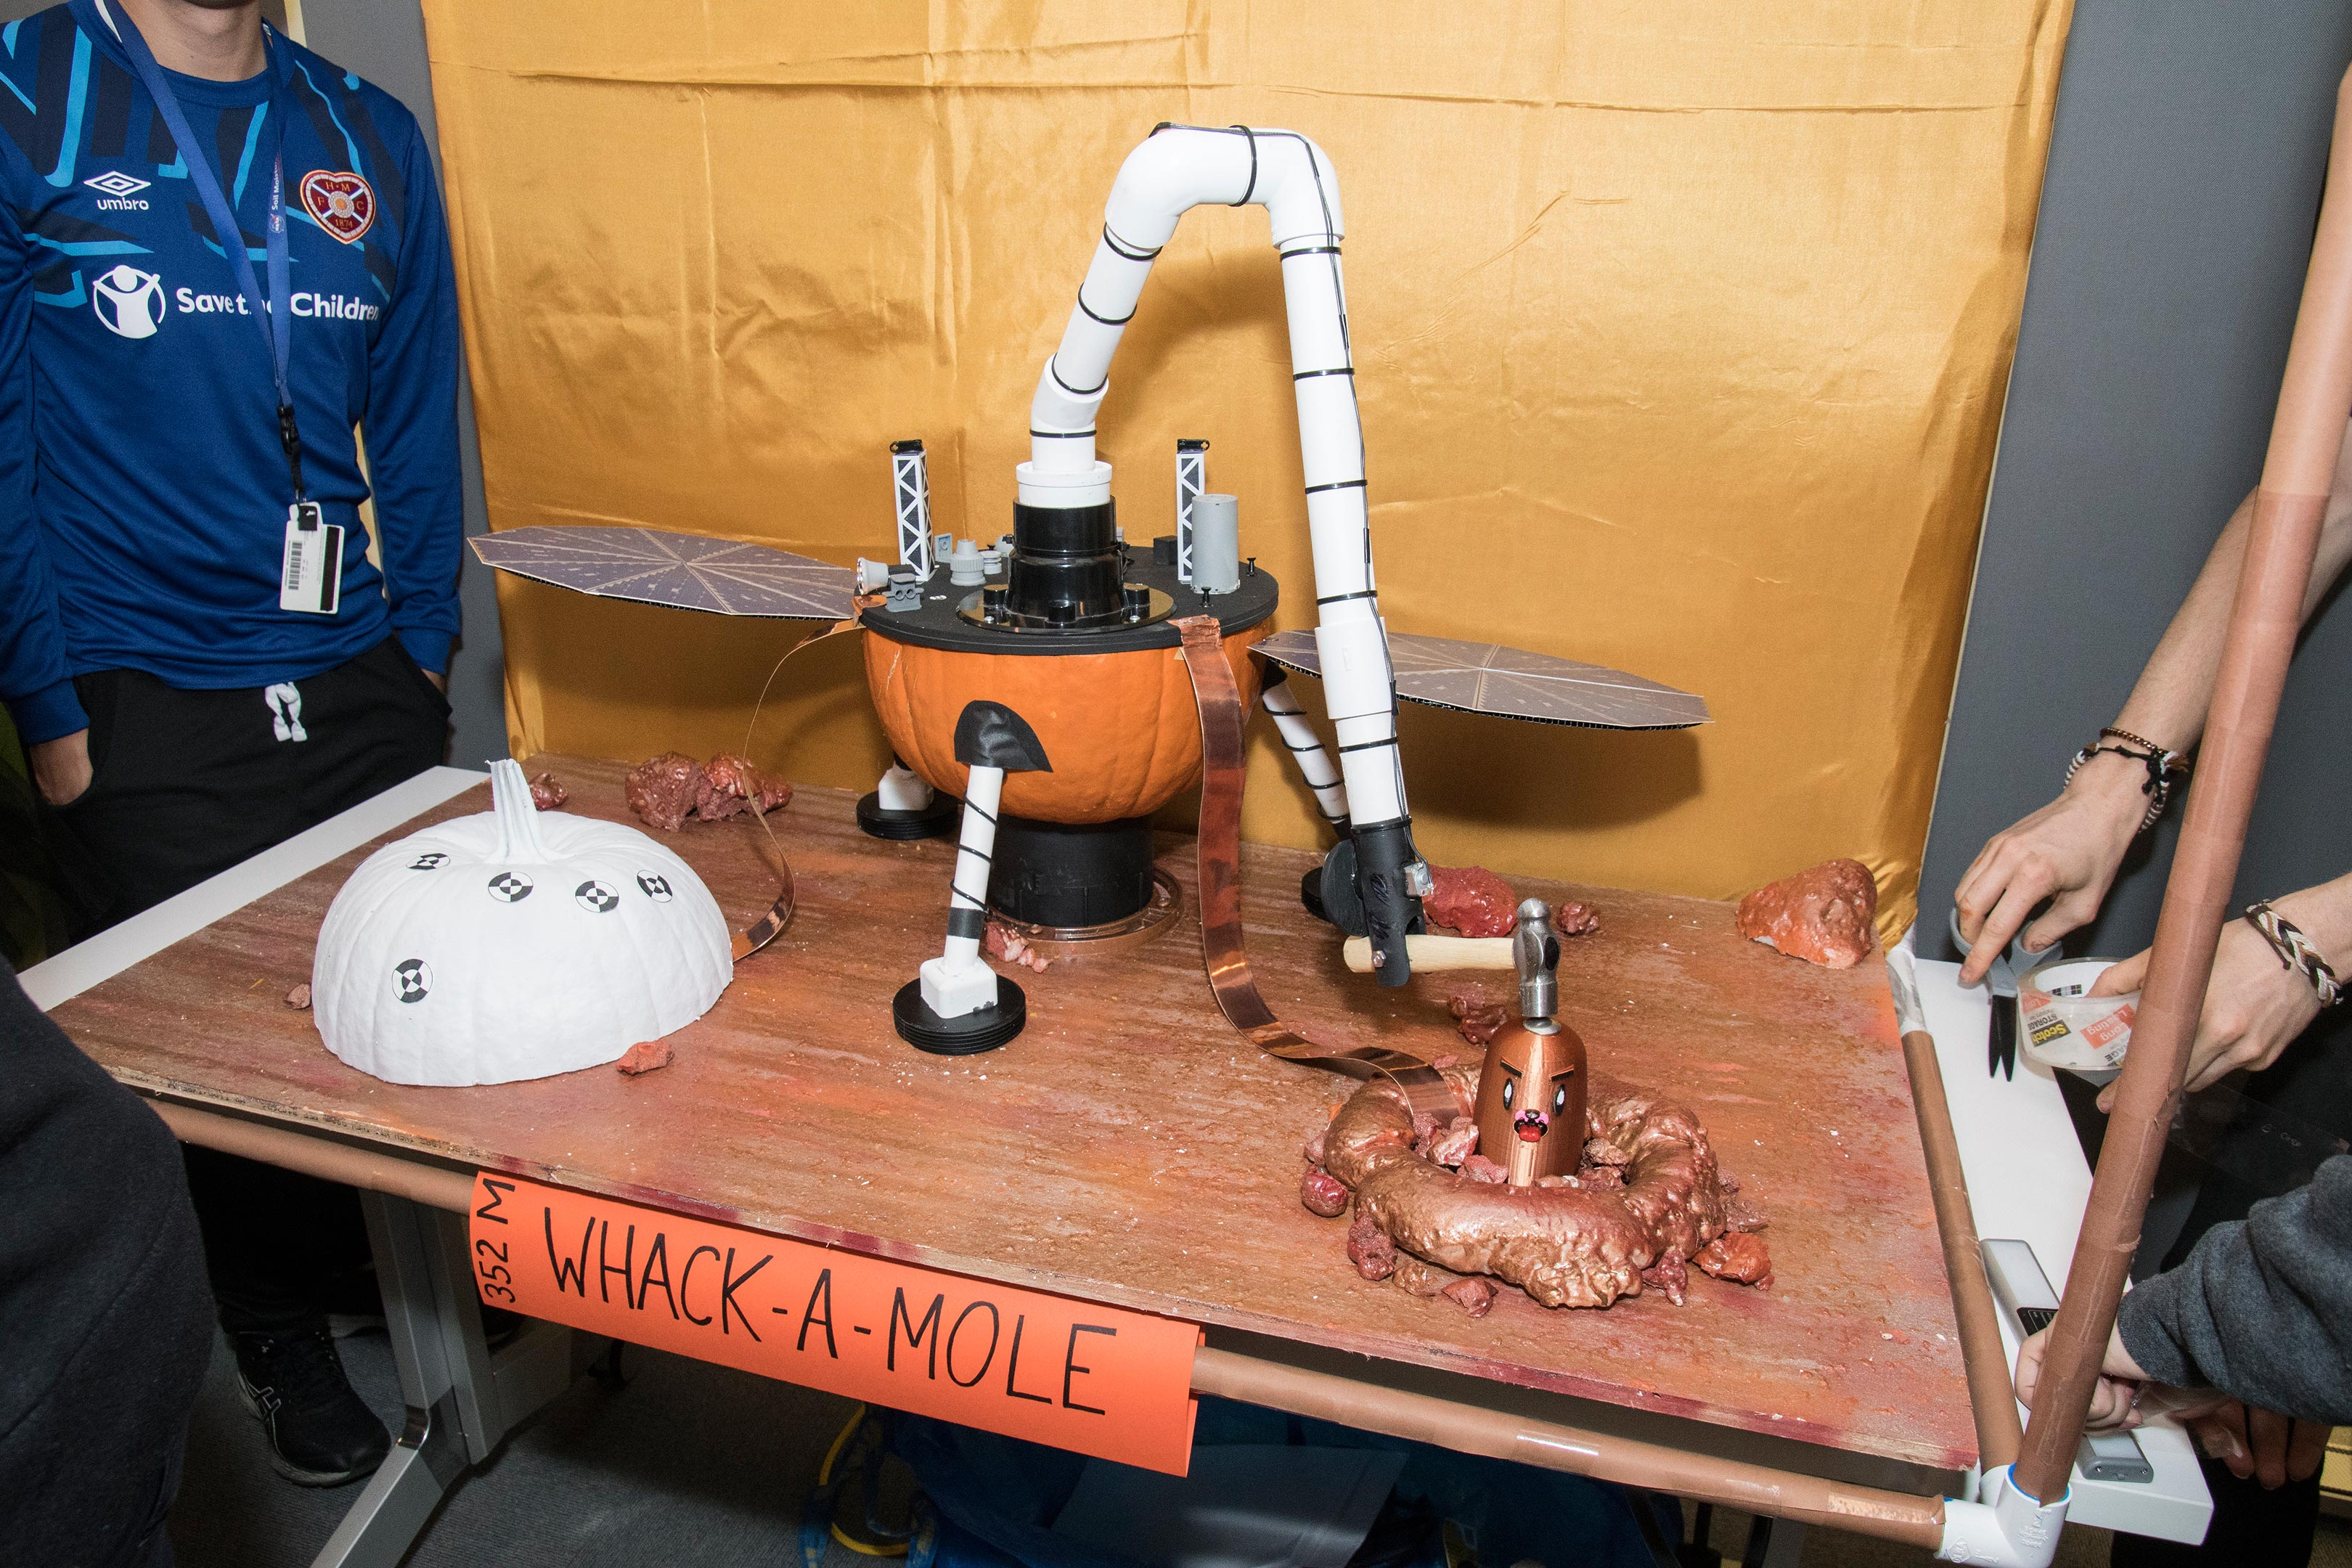 NASA-JPL Annual Pumpkin-Carving Contest 2019